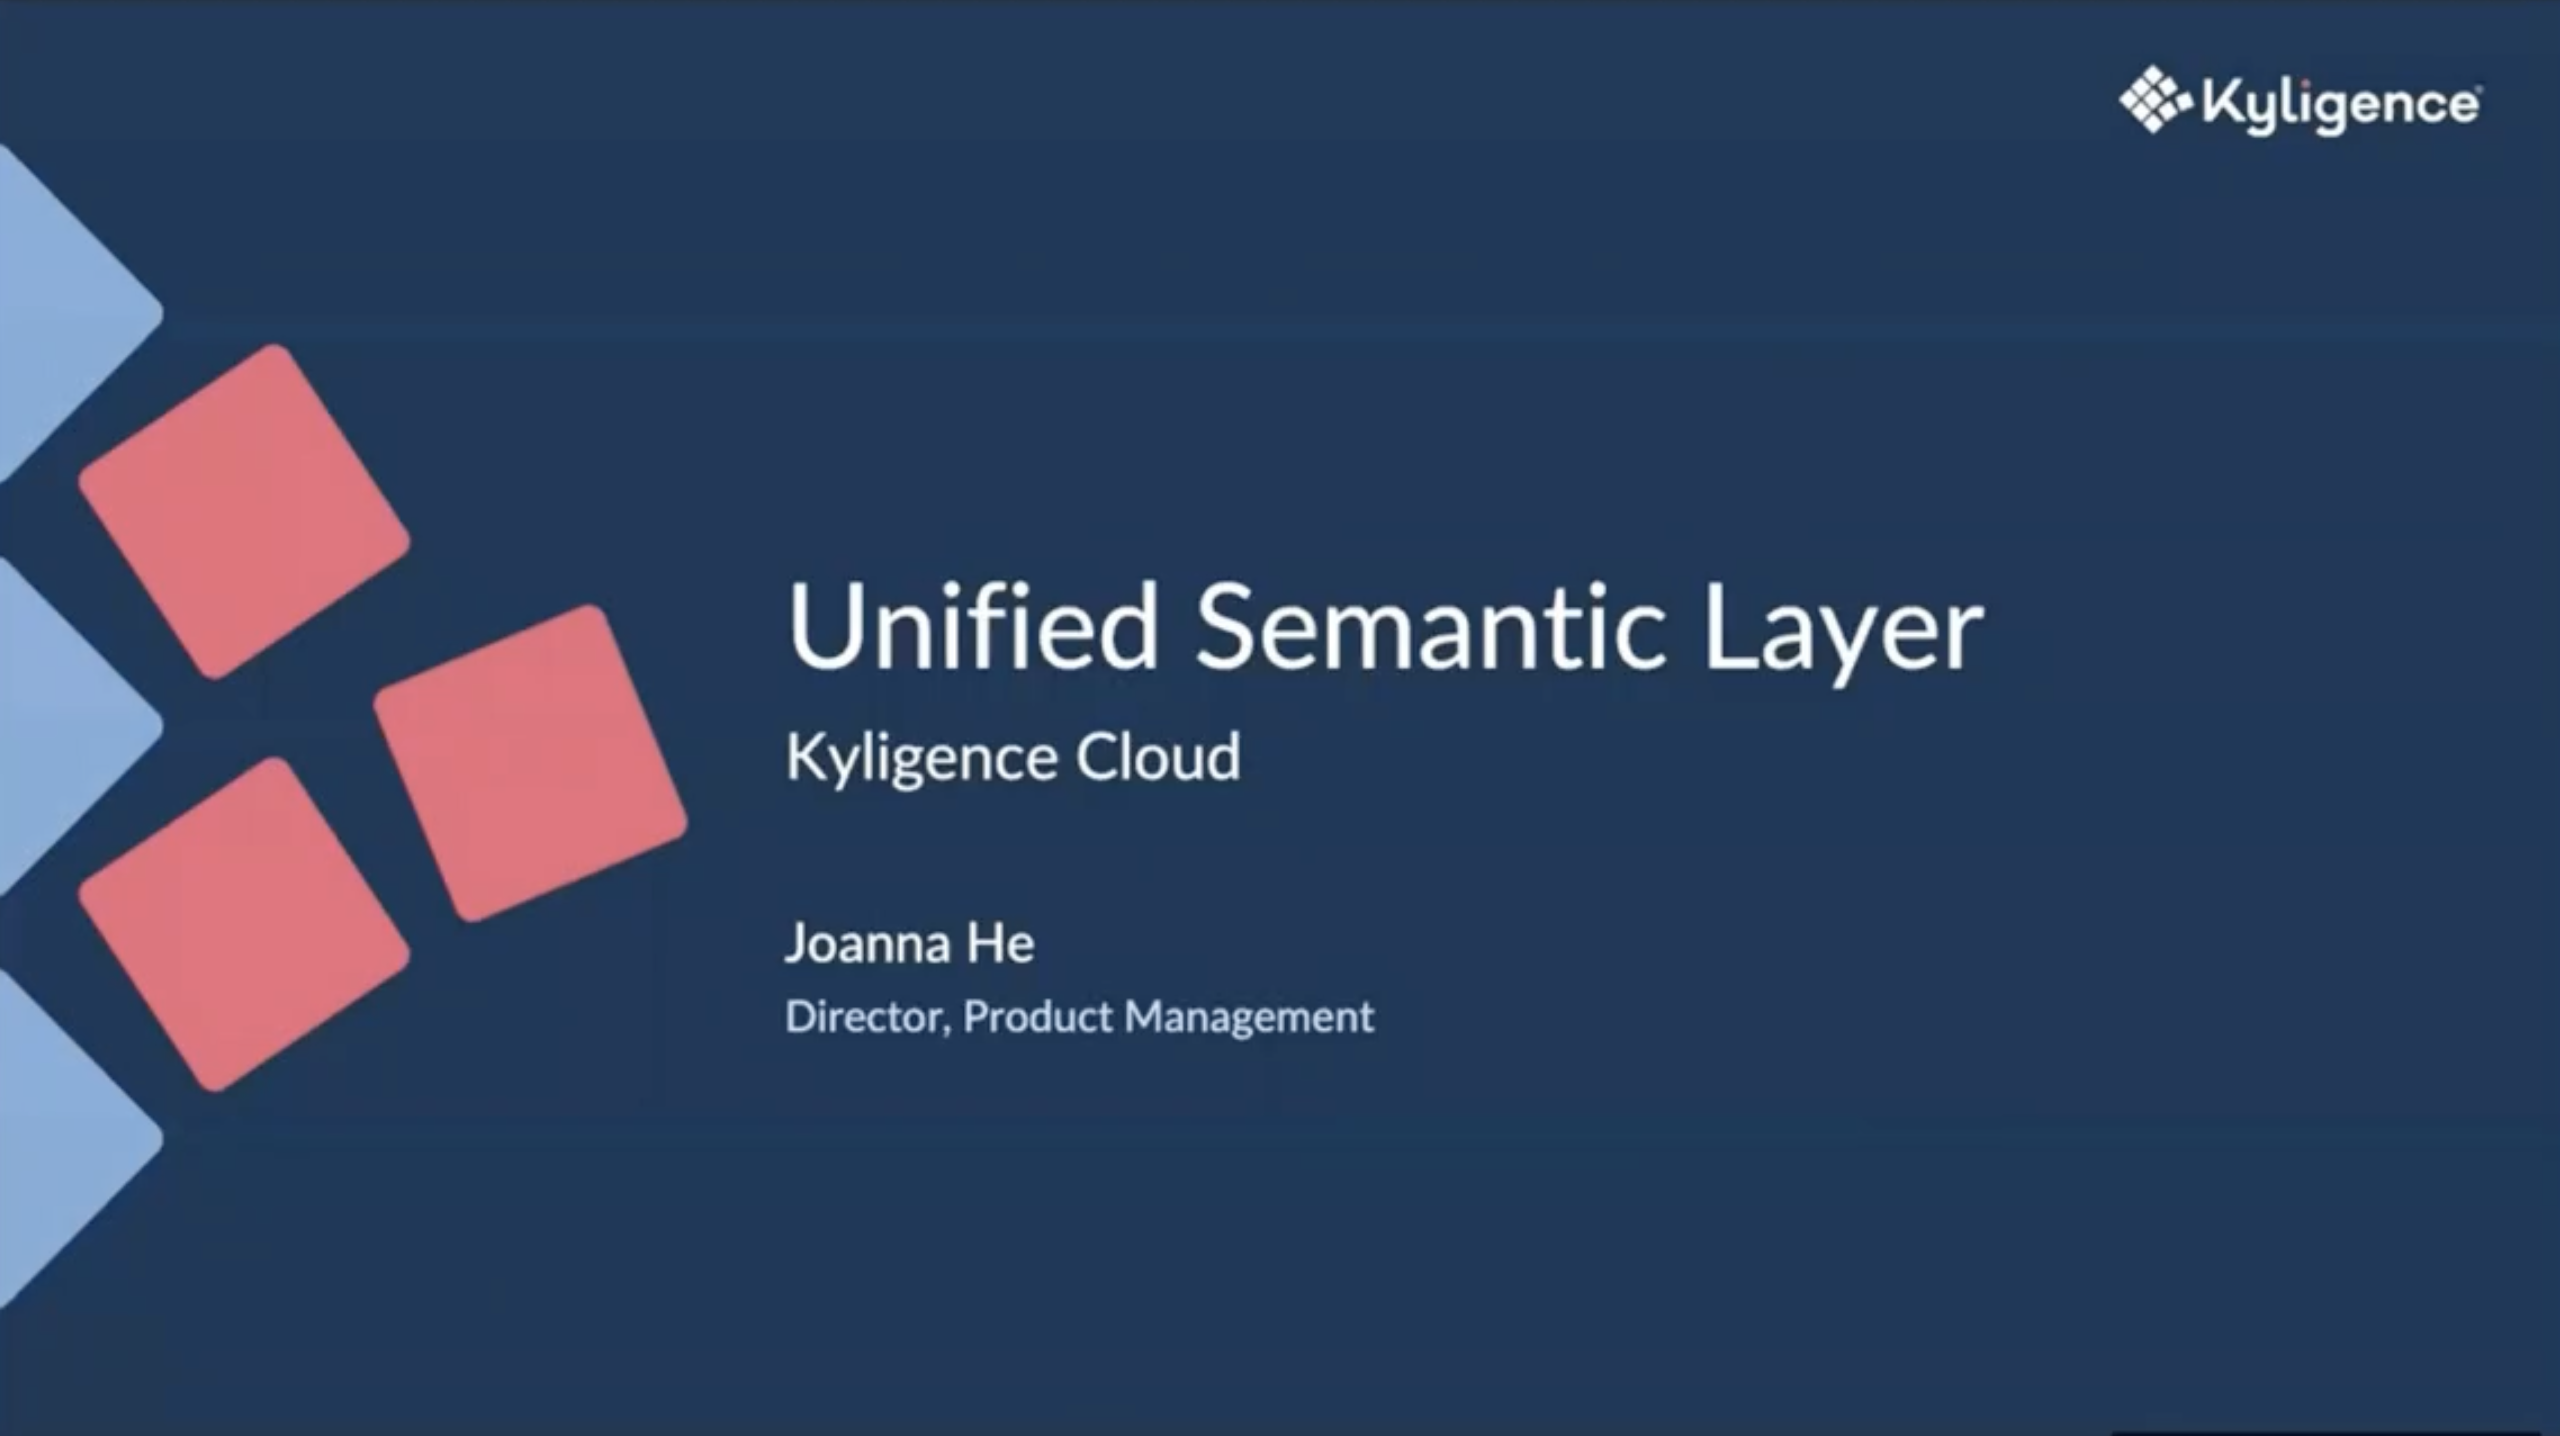 Kyligence cloud 4 feature focus united semantic layer